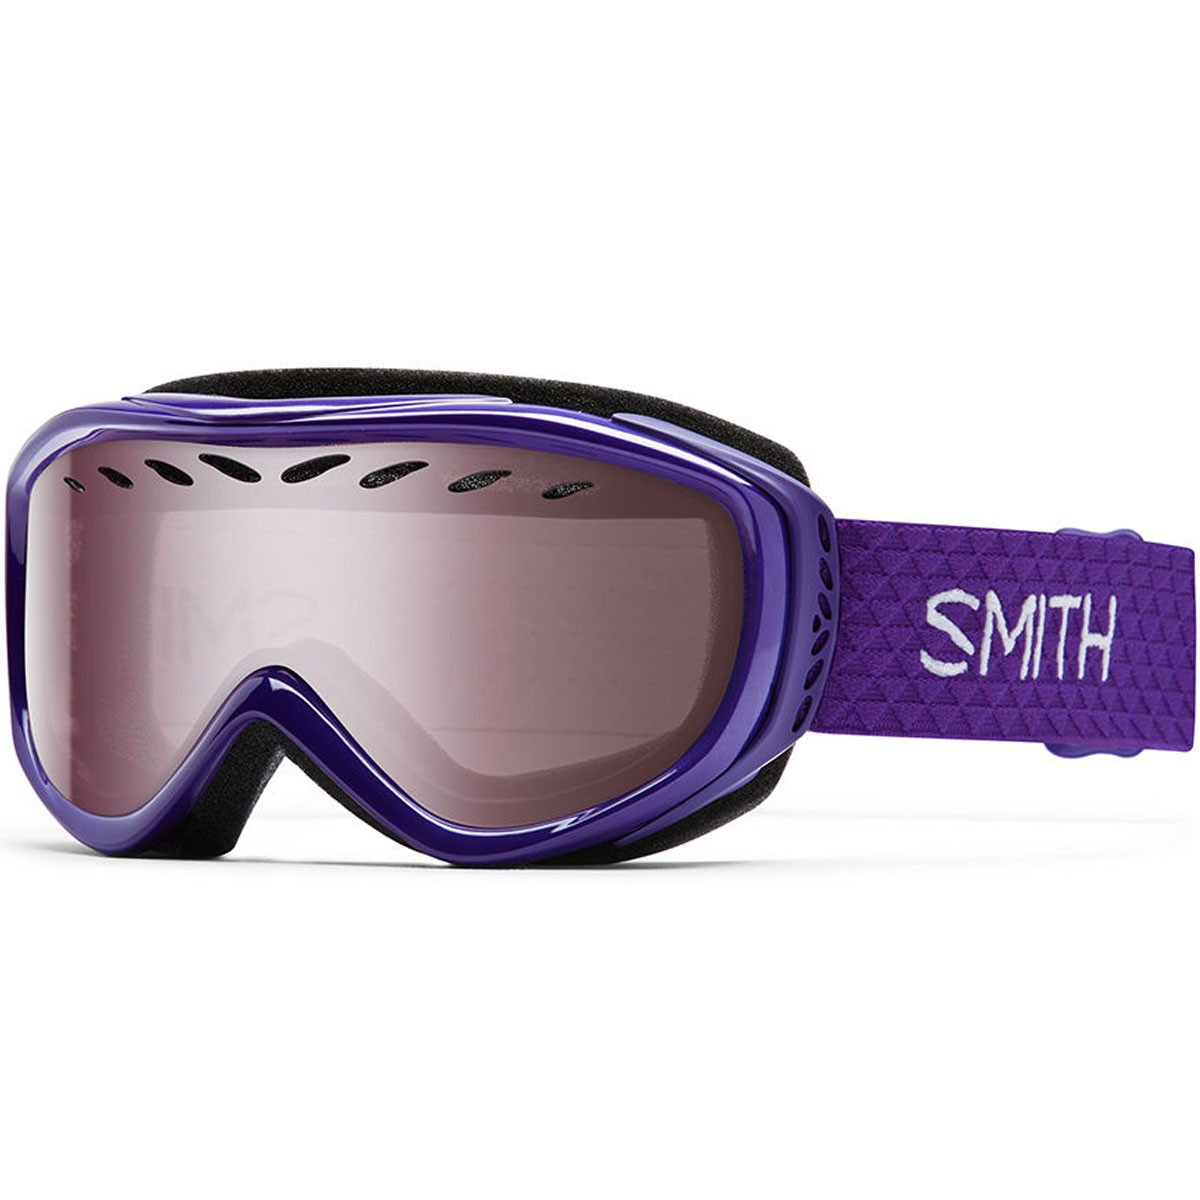 Smith Transit Snowboard Goggles - Ultraviolet with Ignitor Mirror